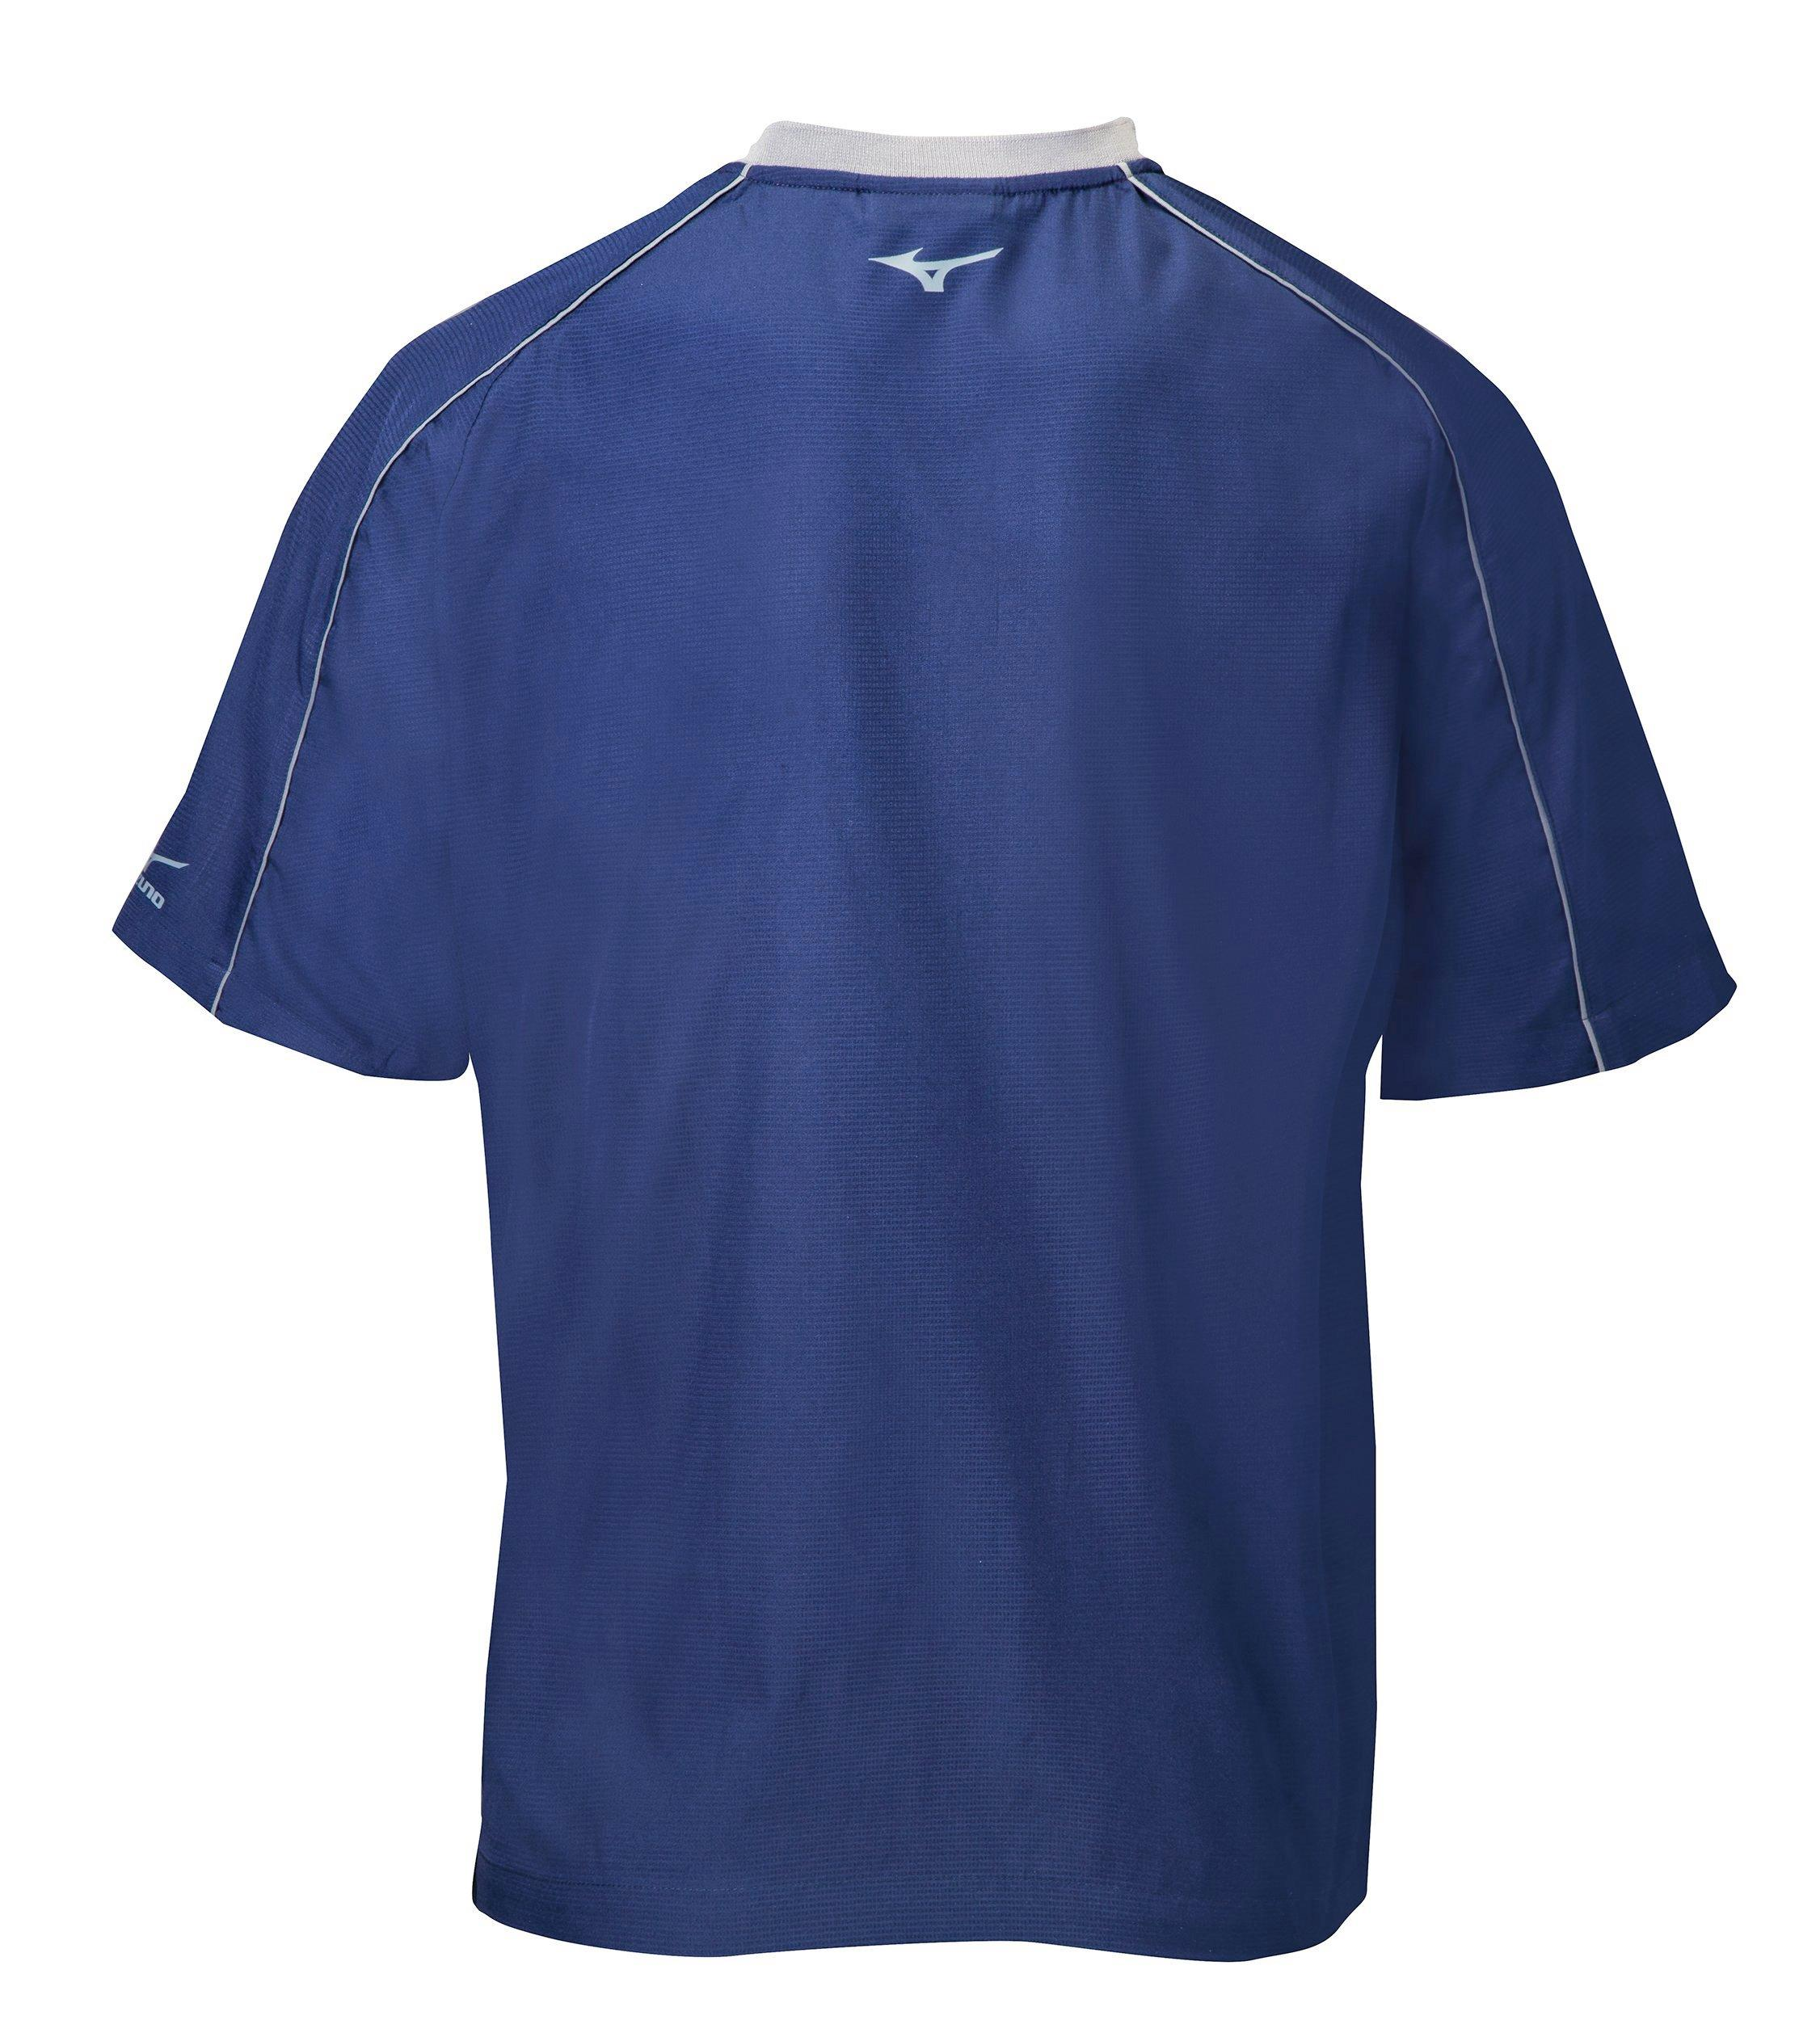 3dec4cce444 Mizuno Youth Baseball Apparel - Youth Comp Short Sleeve Pullover - 350600 -  Walmart.com